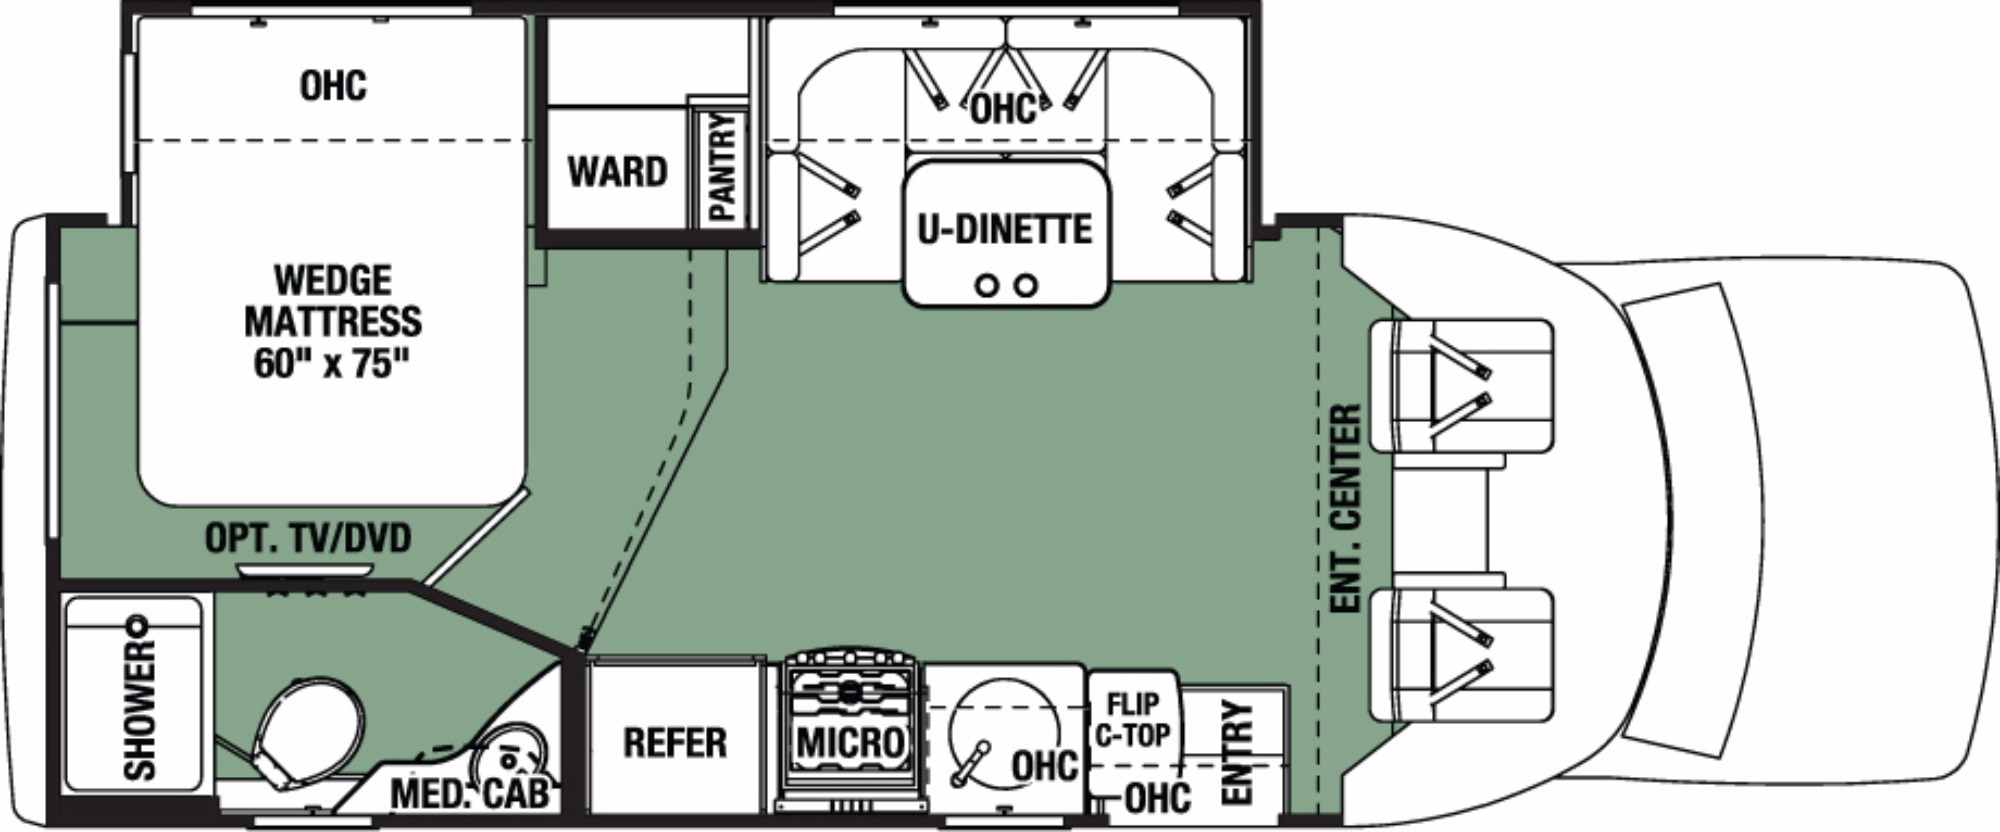 View Floor Plan for 2018 FOREST RIVER FORESTER 2431SF